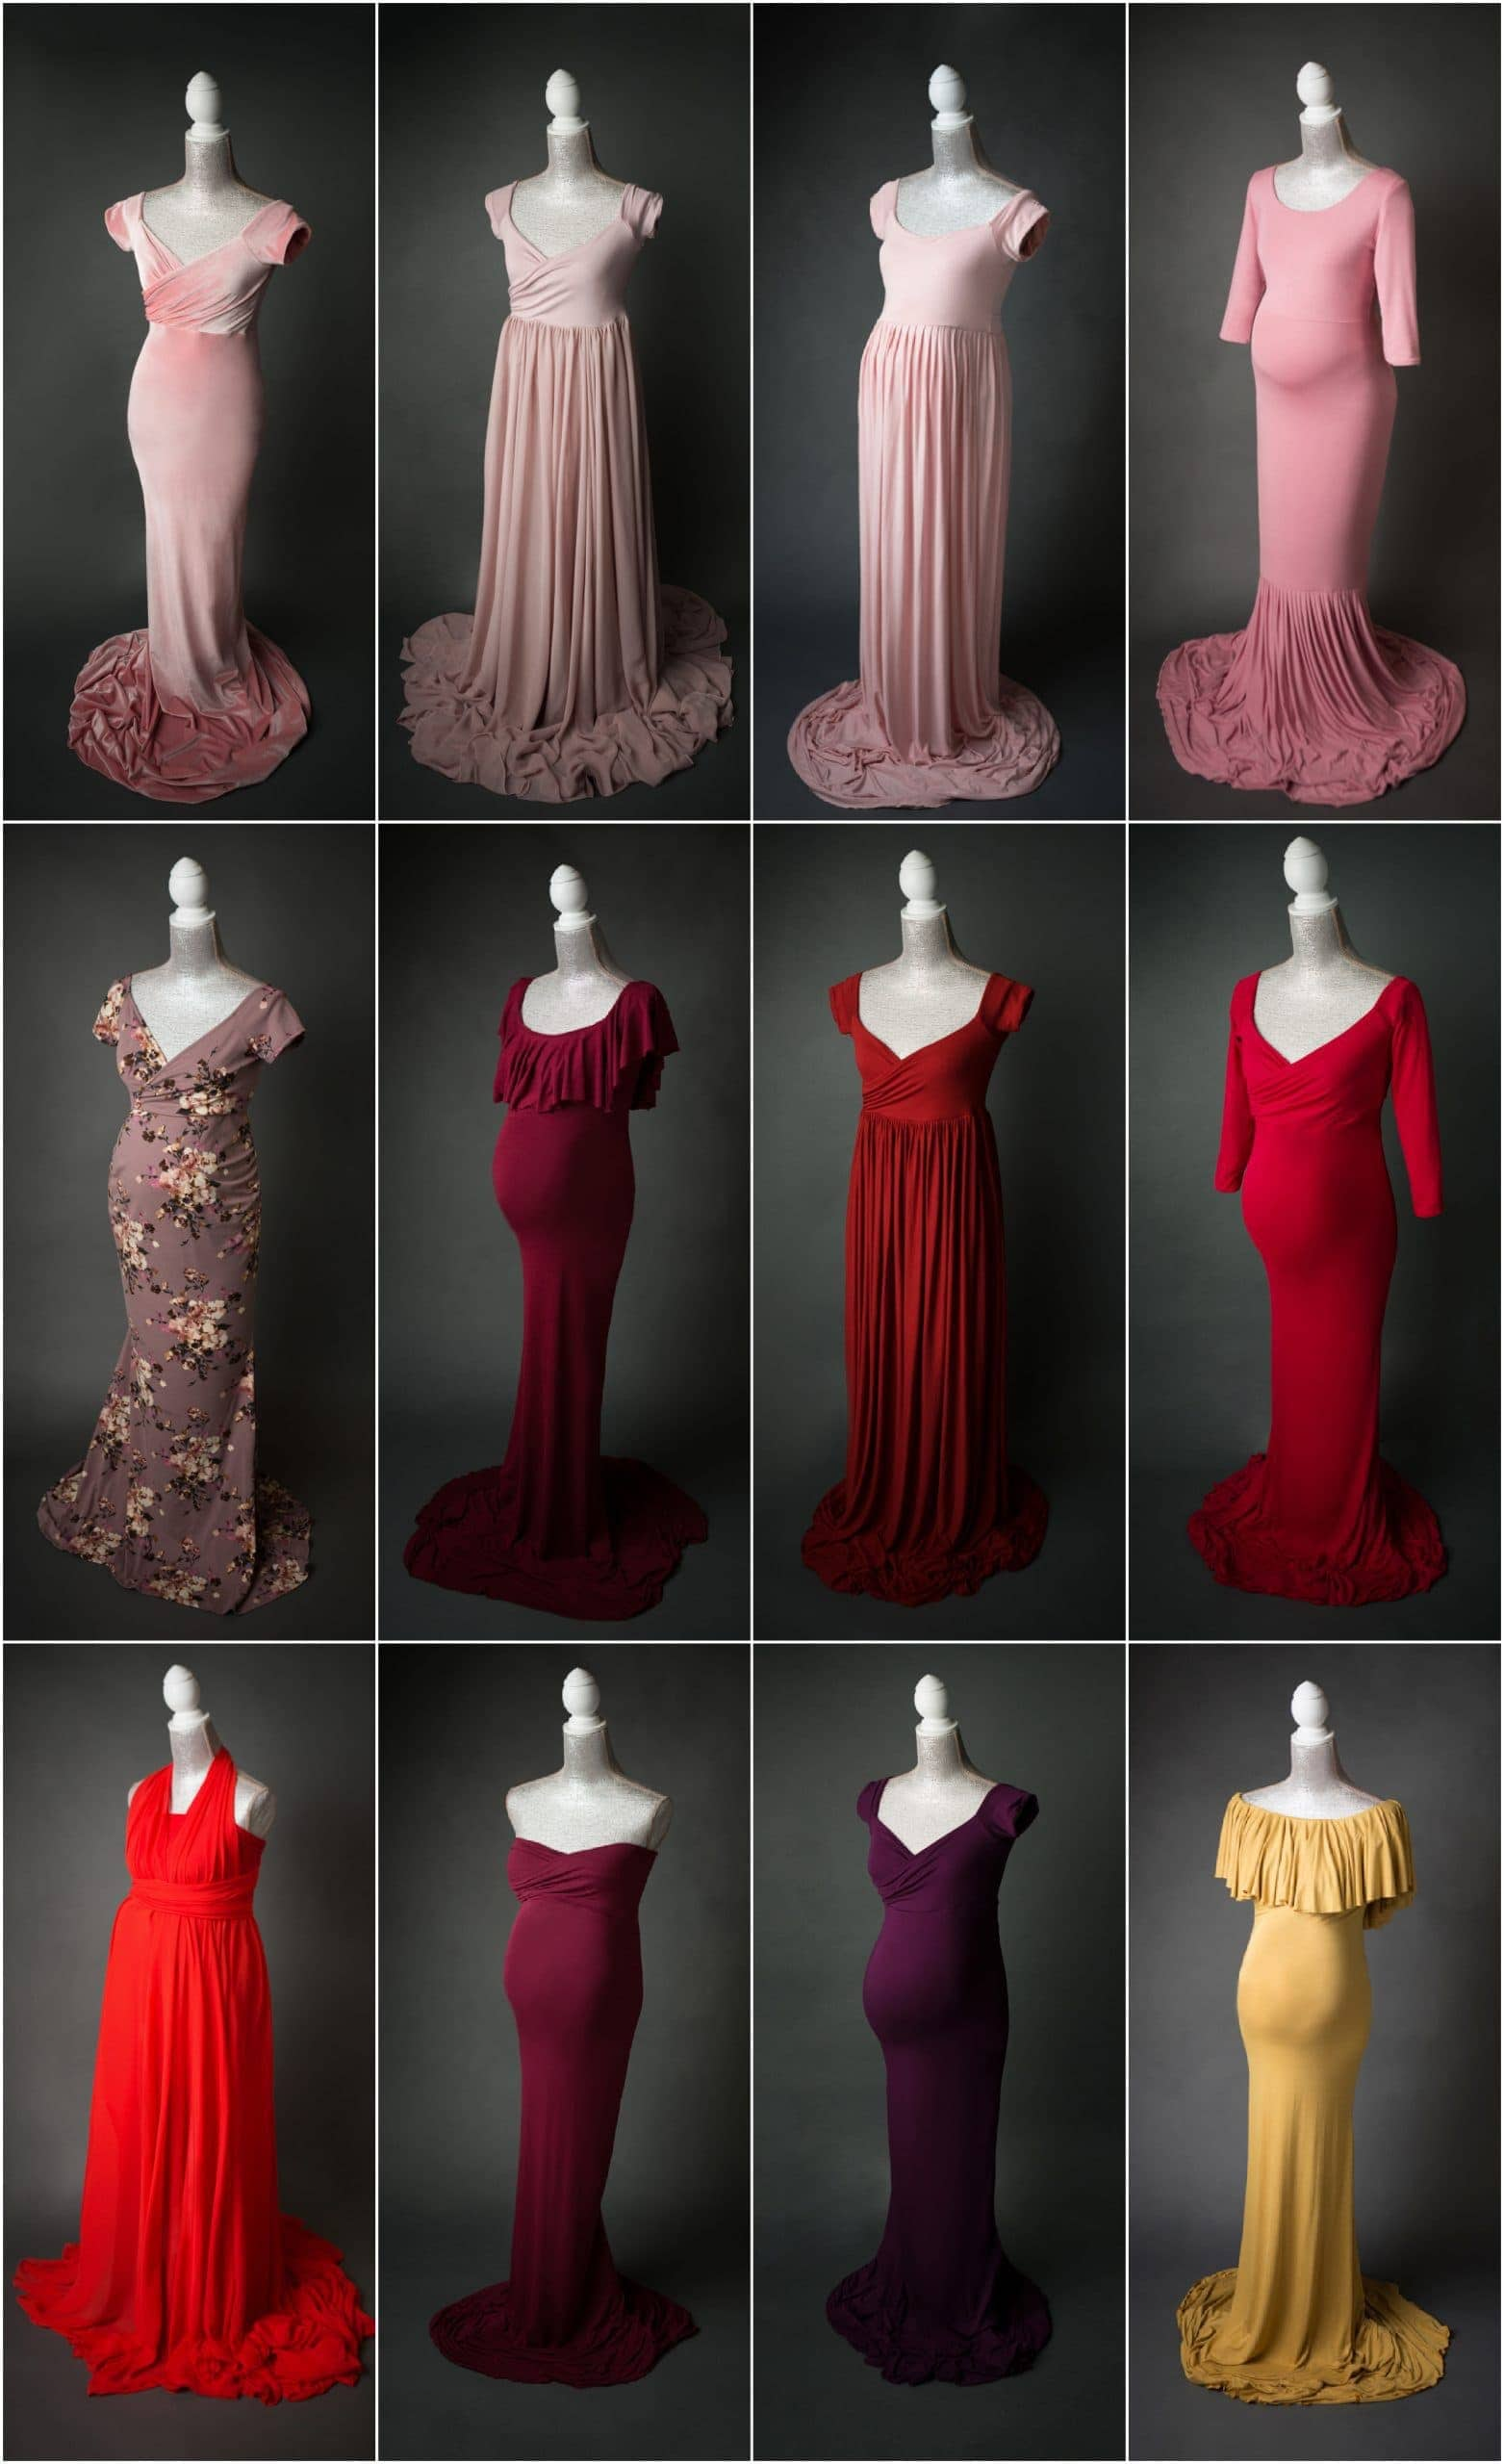 pink red burgandy and gold maternity photo shoot dresses for portraits in san antonio, texas by jenn brookover photography